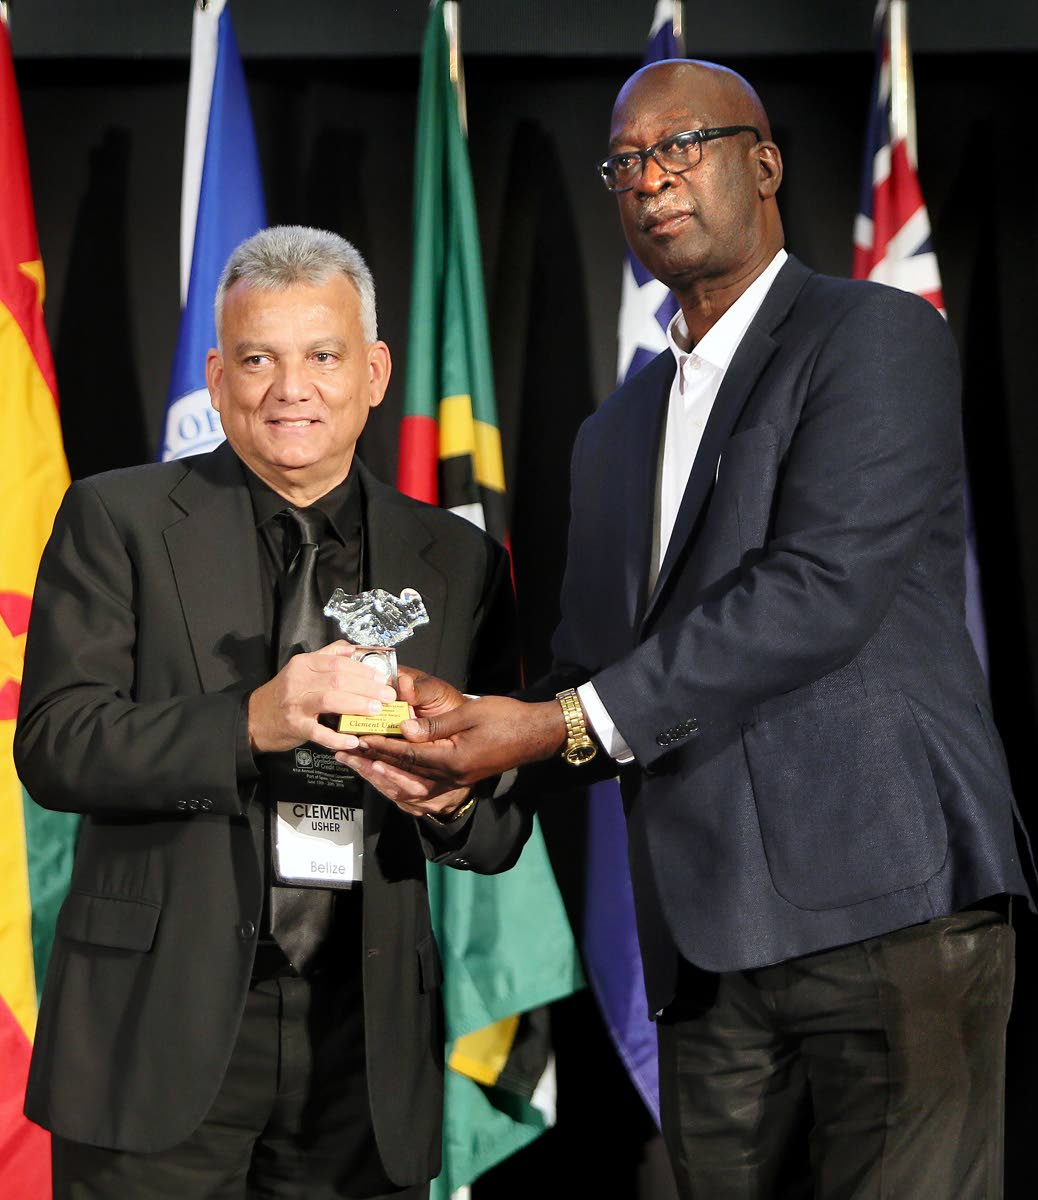 Joseph Remy, vice president of the Caribbean Confederation of Credit Unions (CCCU), right, presents a long-service award to Clement Usher, at the 61st annual international convention of the CCCU at the Hyatt Regency, Port of Spain, on Saturday.